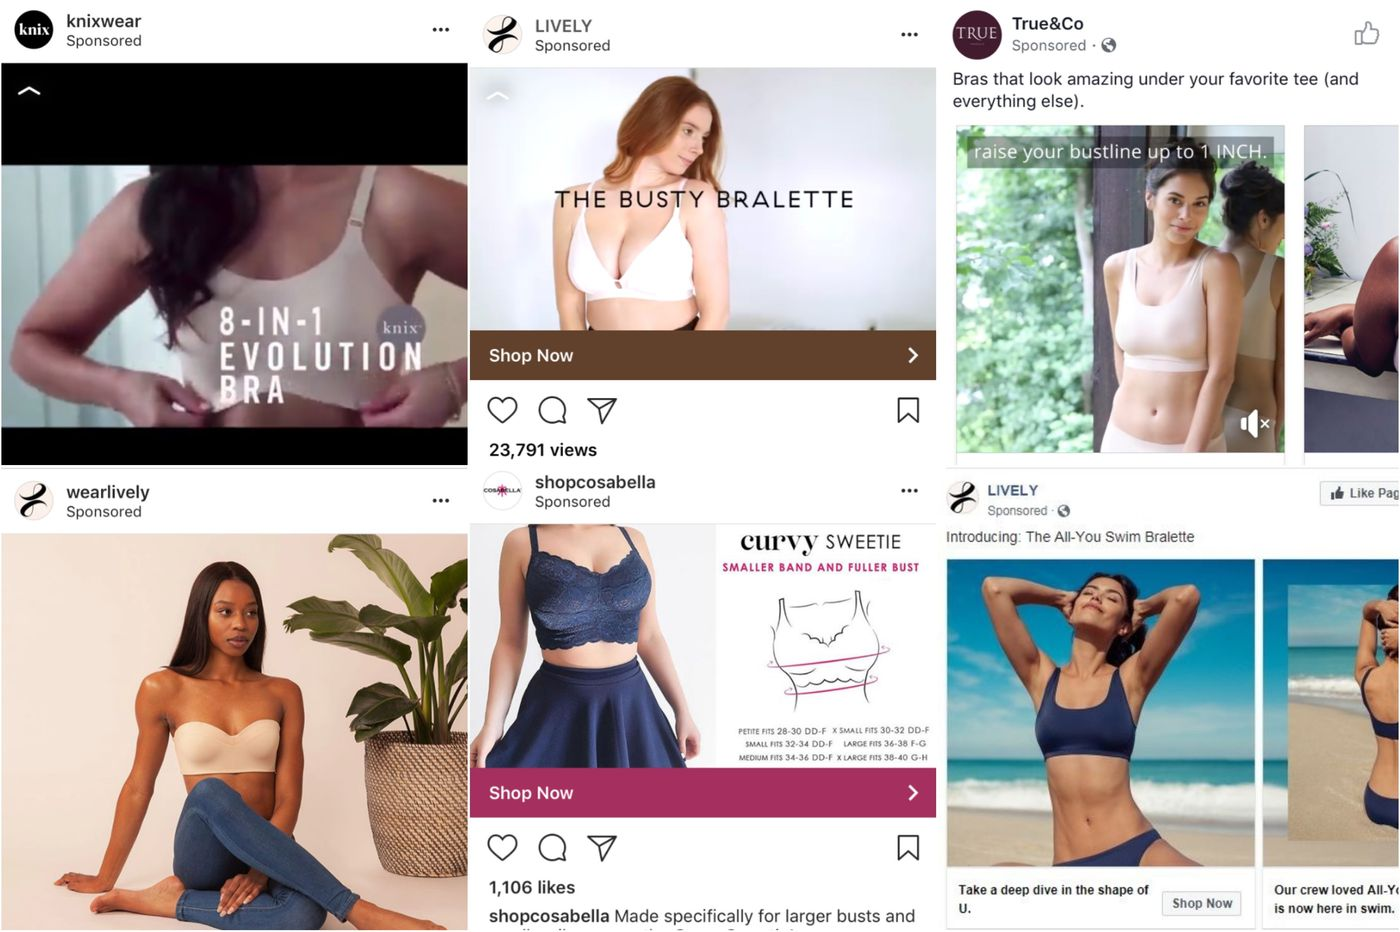 Can an online quiz deliver the perfect bra? These Instagram-famous companies think so